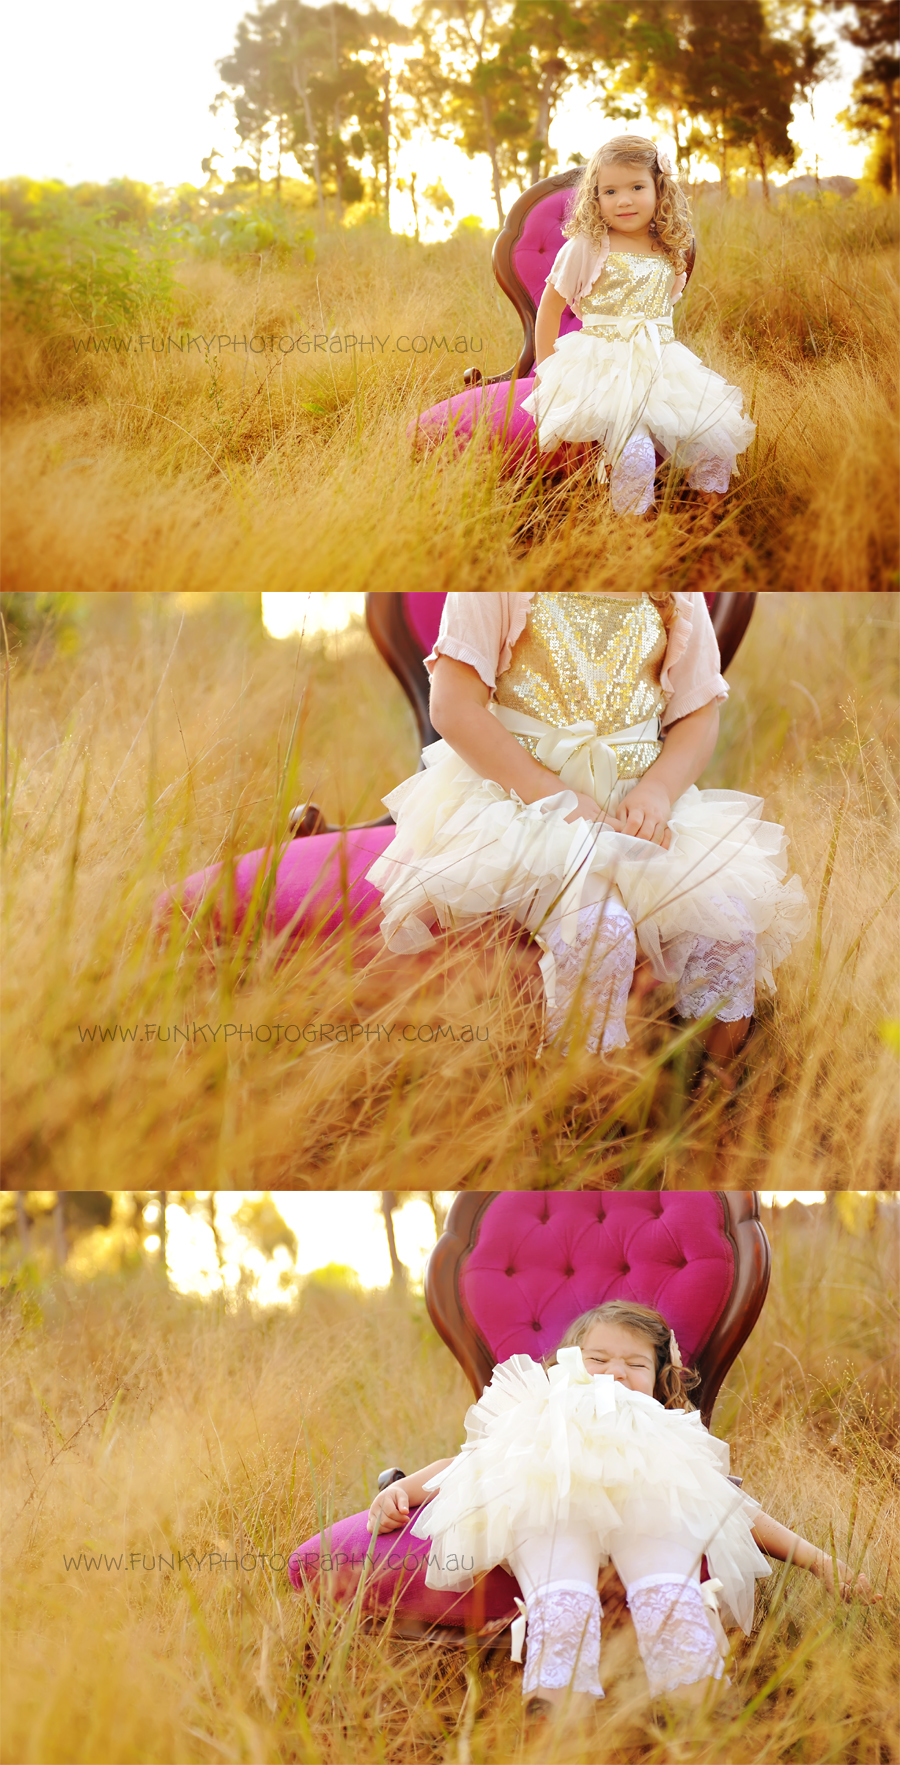 child in tutu sitting on a chair in a field